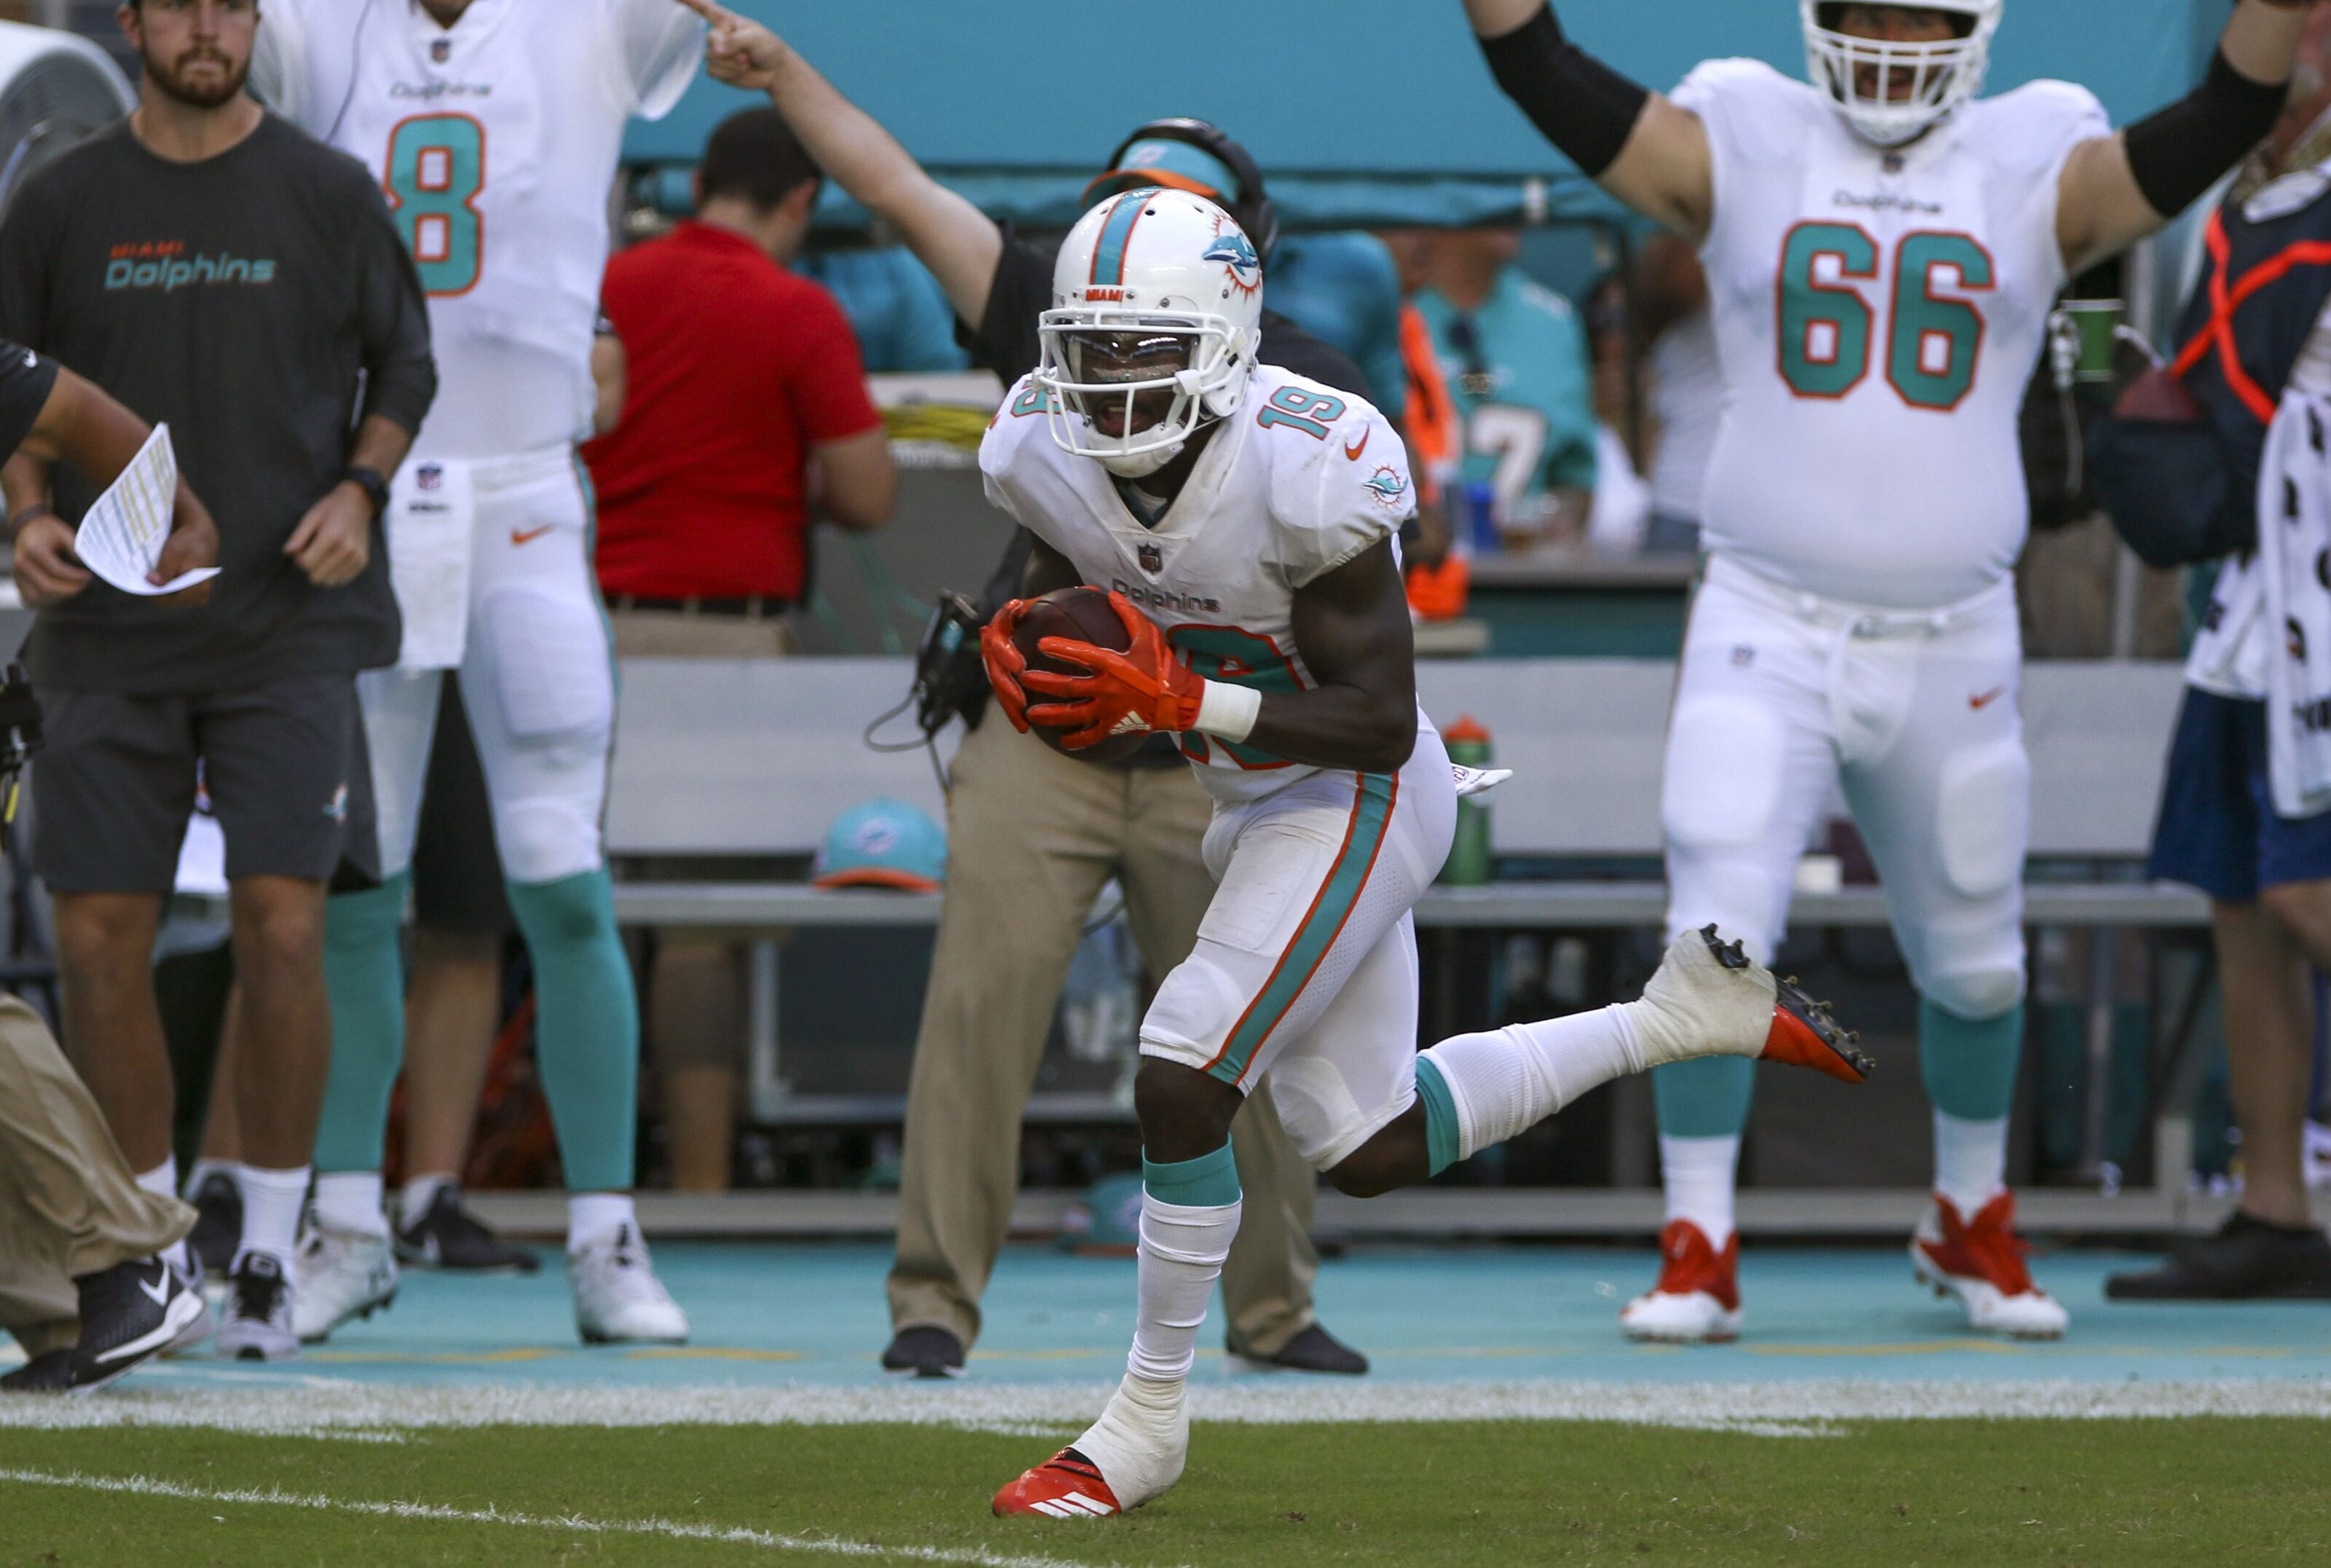 Jakeem Grant taking reps but playing smart in his recovery